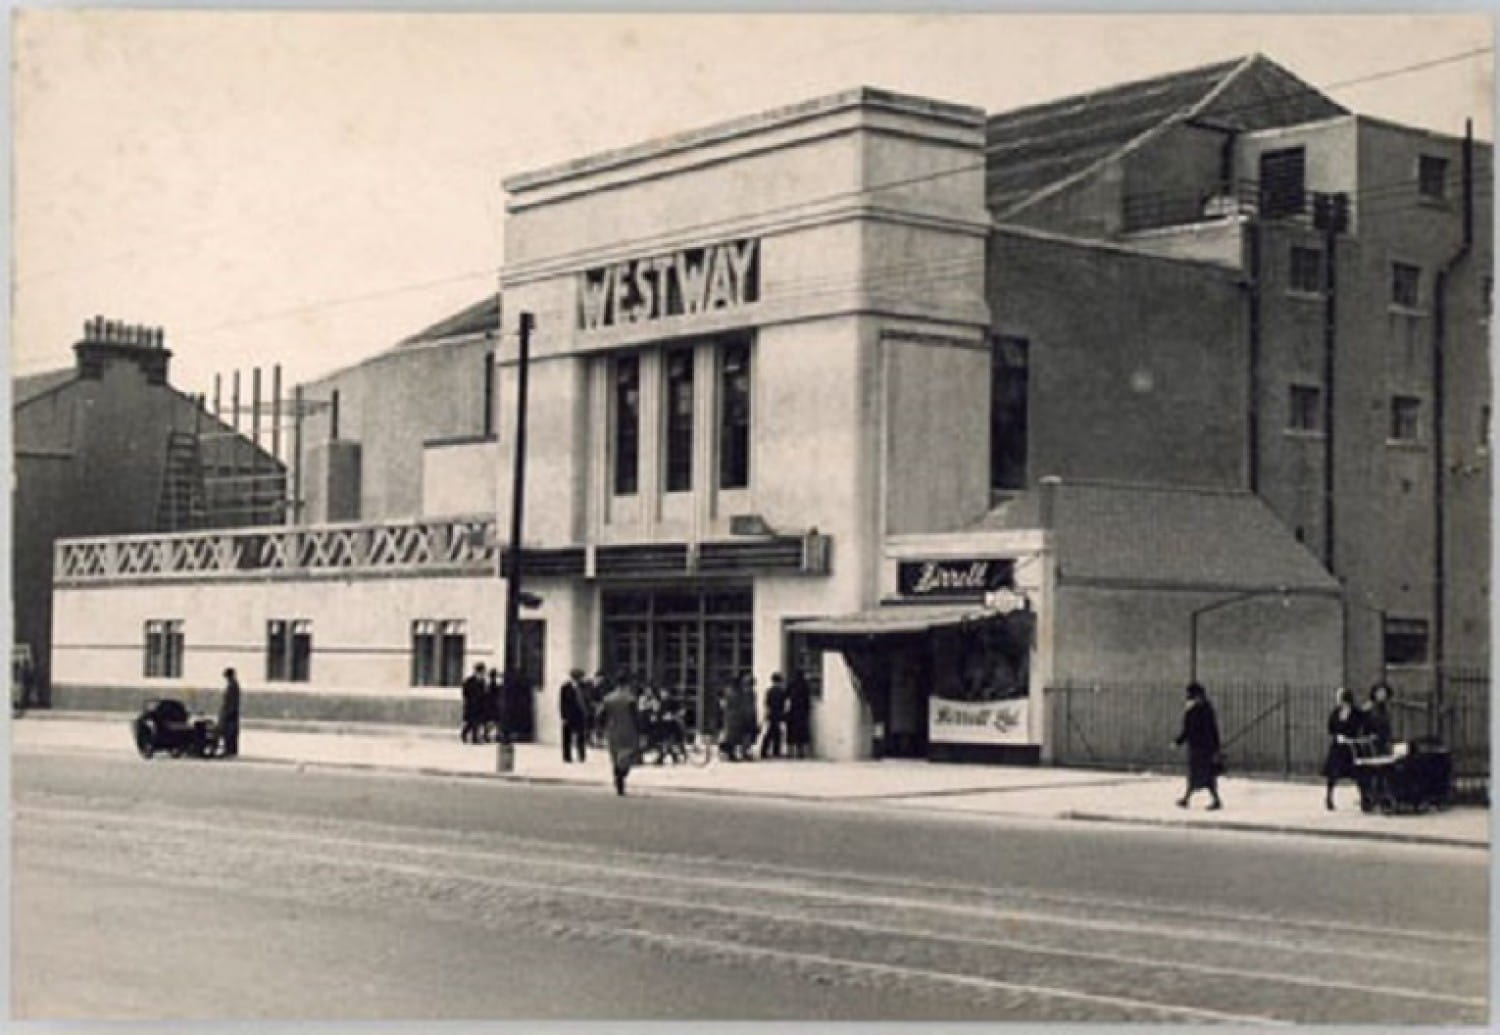 The Westway Cinema, Paisley Road West, Cardonald (National Museums Scotland)